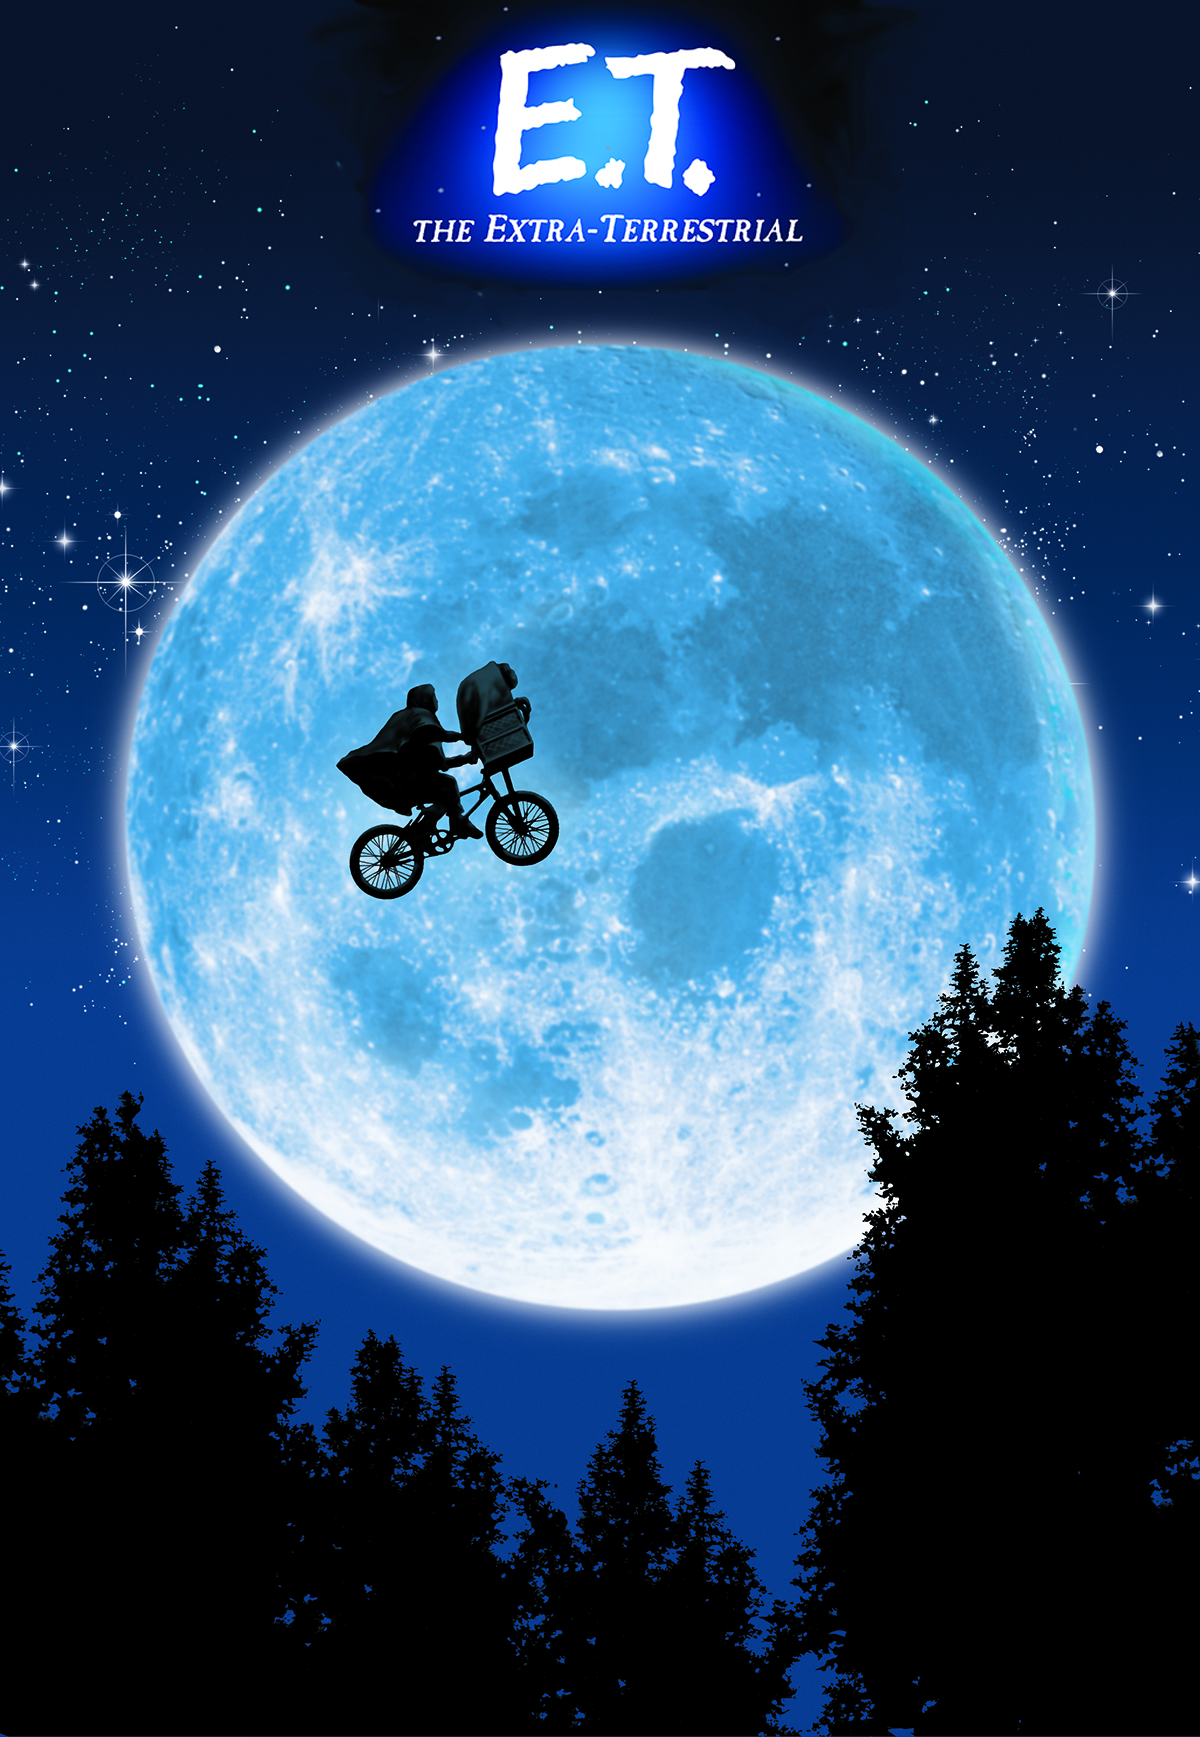 Moon To Moon Moroccan Home: E.T. The Extra-Terrestrial In Concert